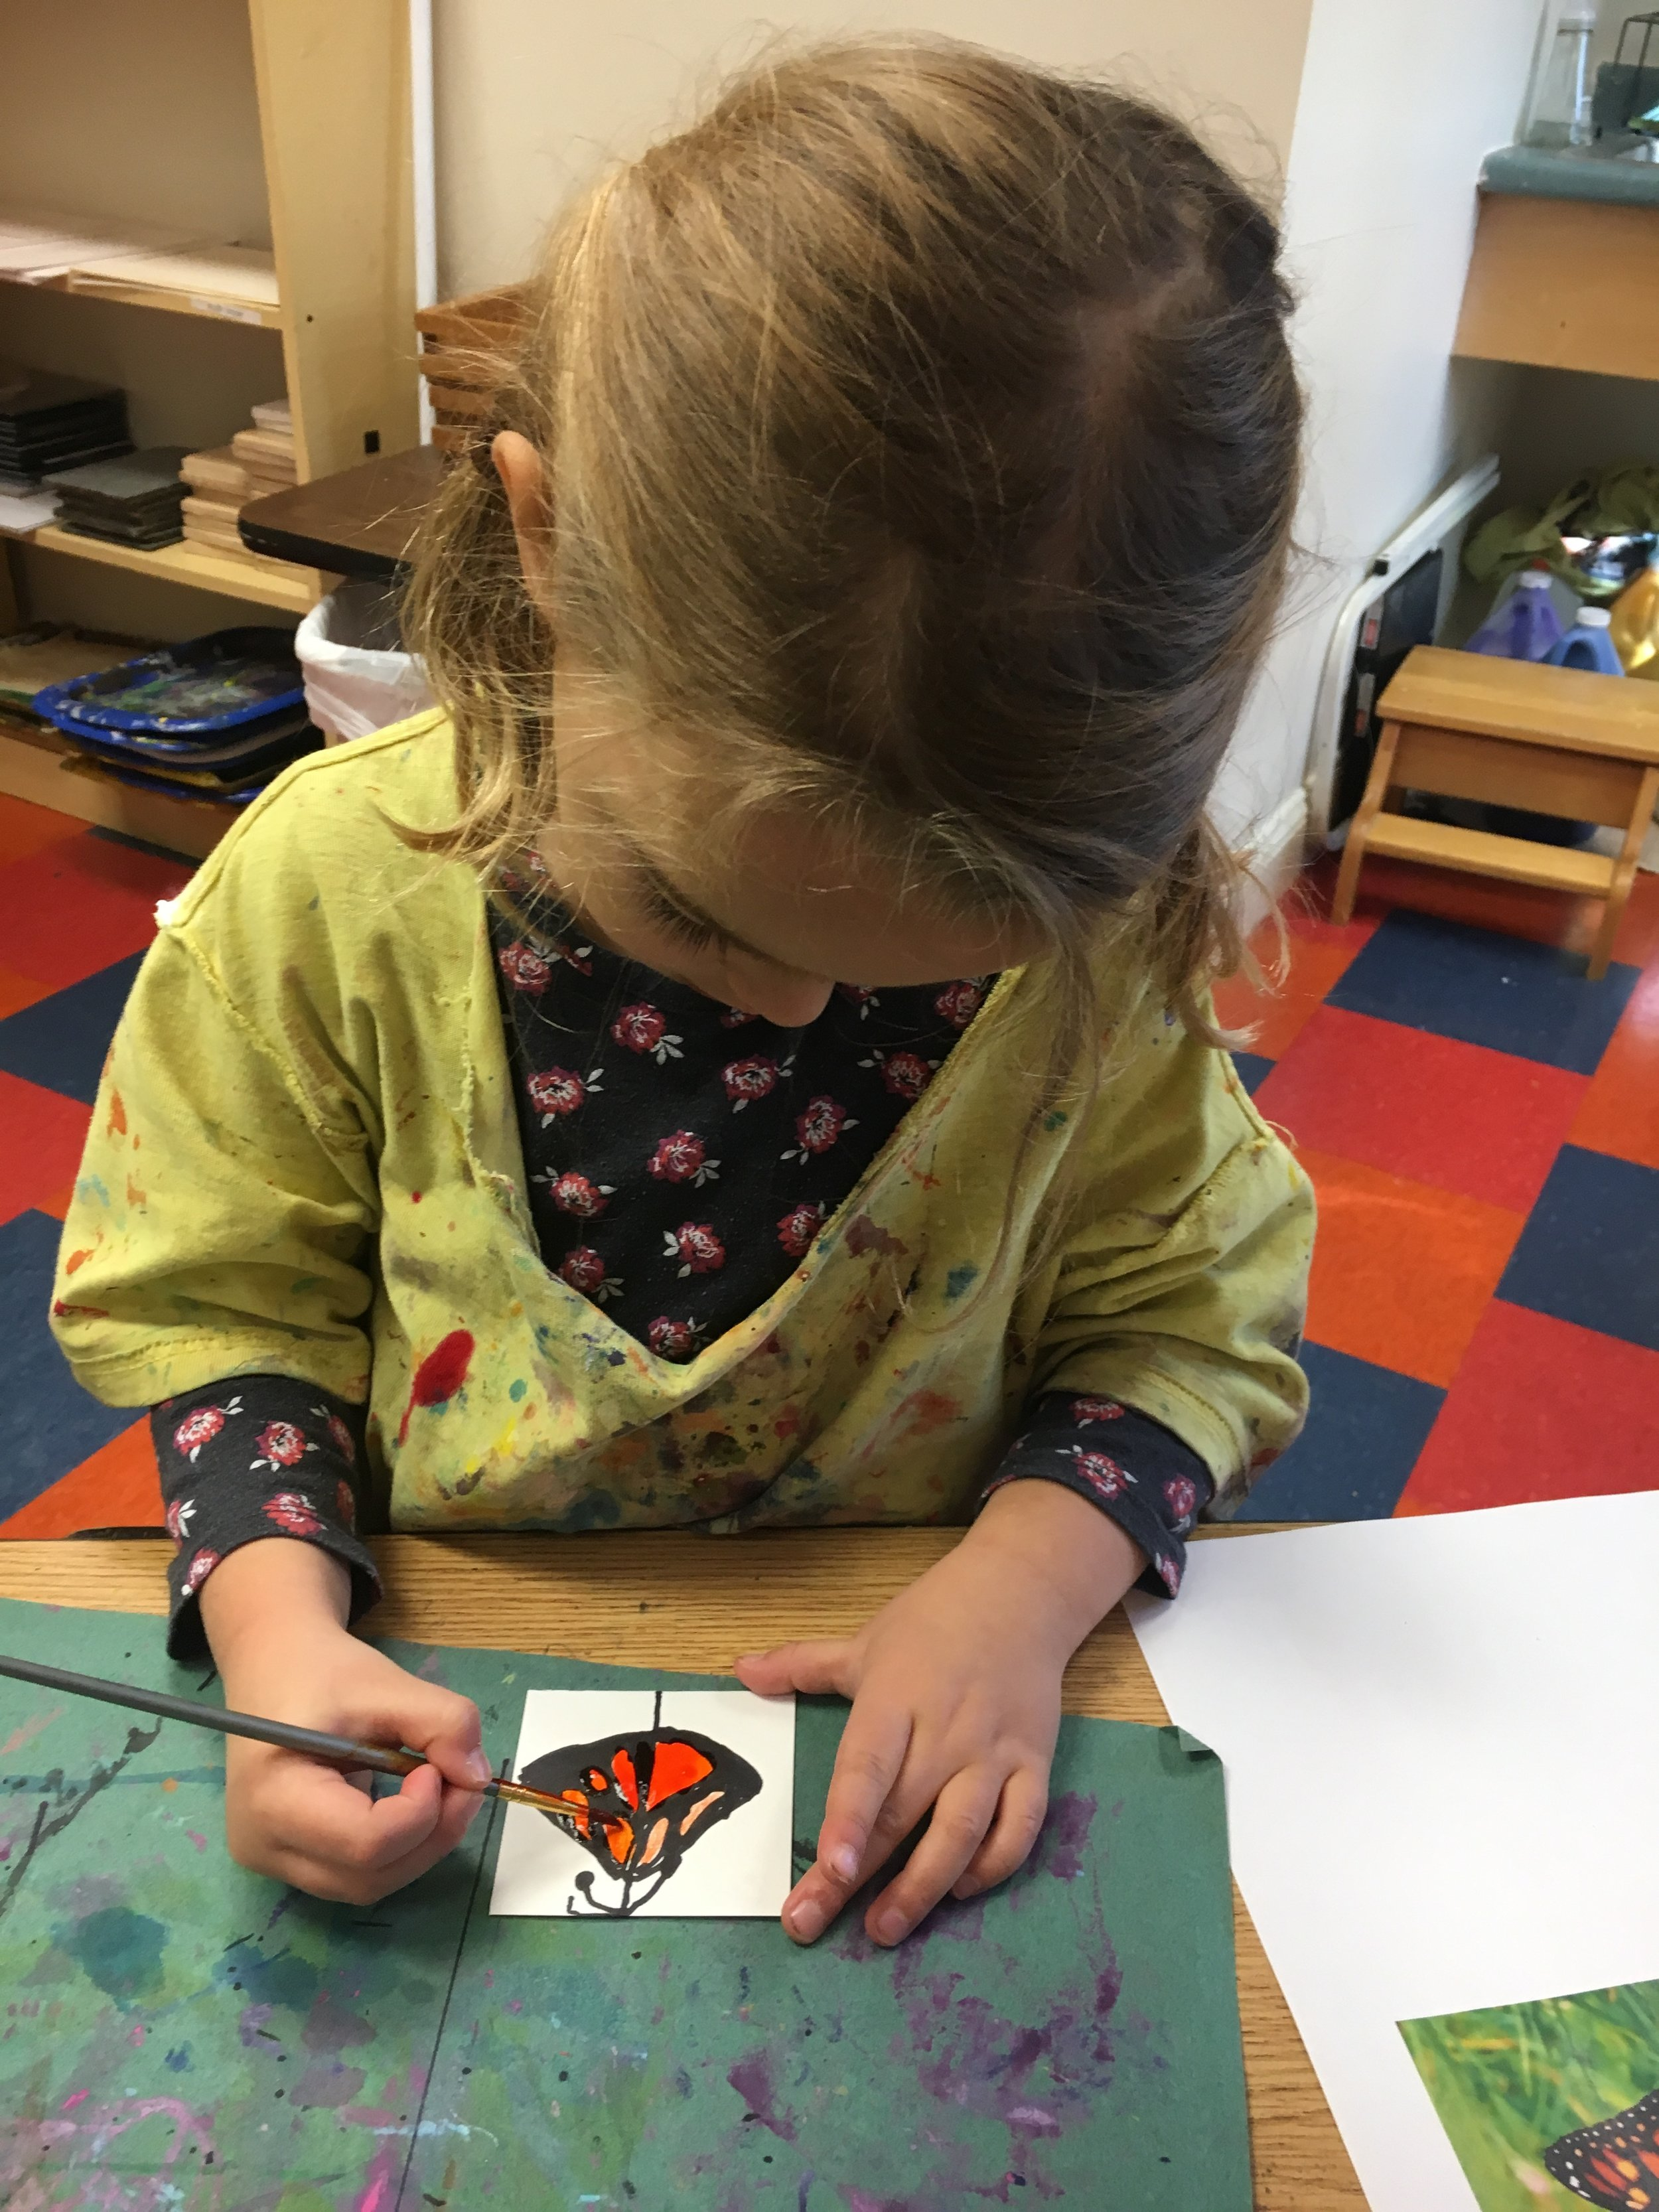 This 4 year old girl uses black sharpie and water color paints to create a Monarch butterfly in the art studio.